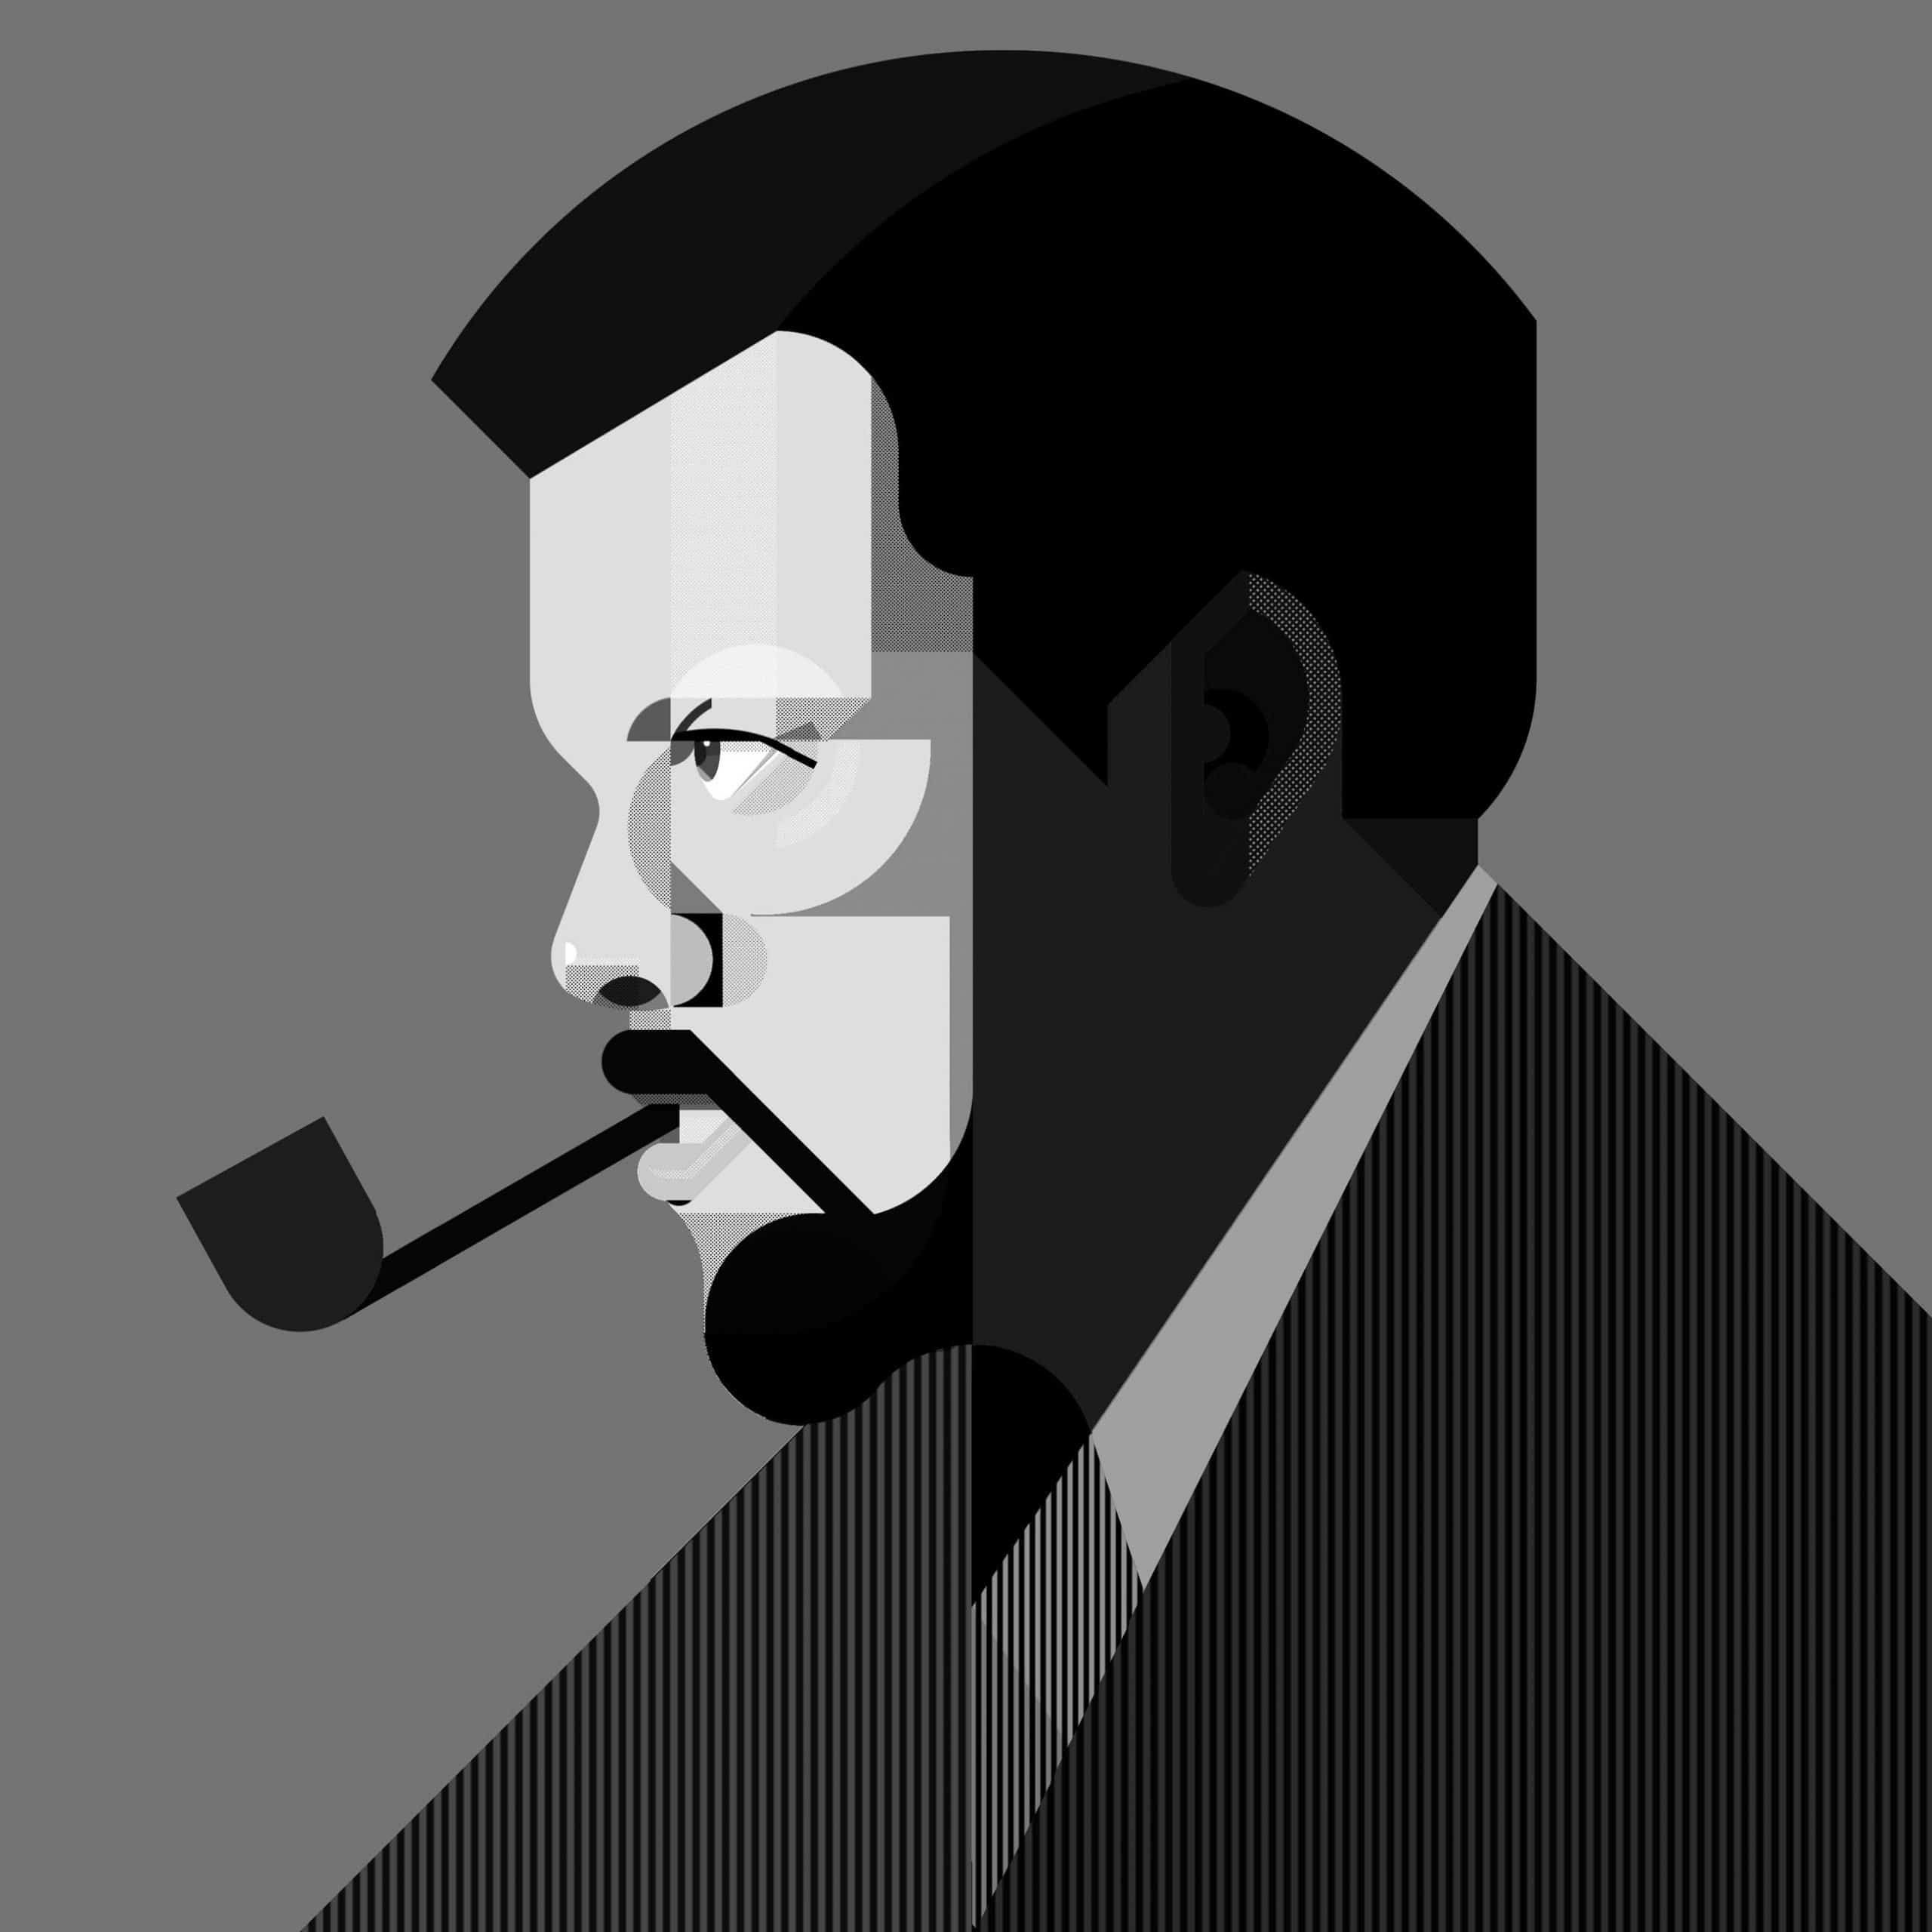 Orson-Welles-illustration-portrait-alice-iuri